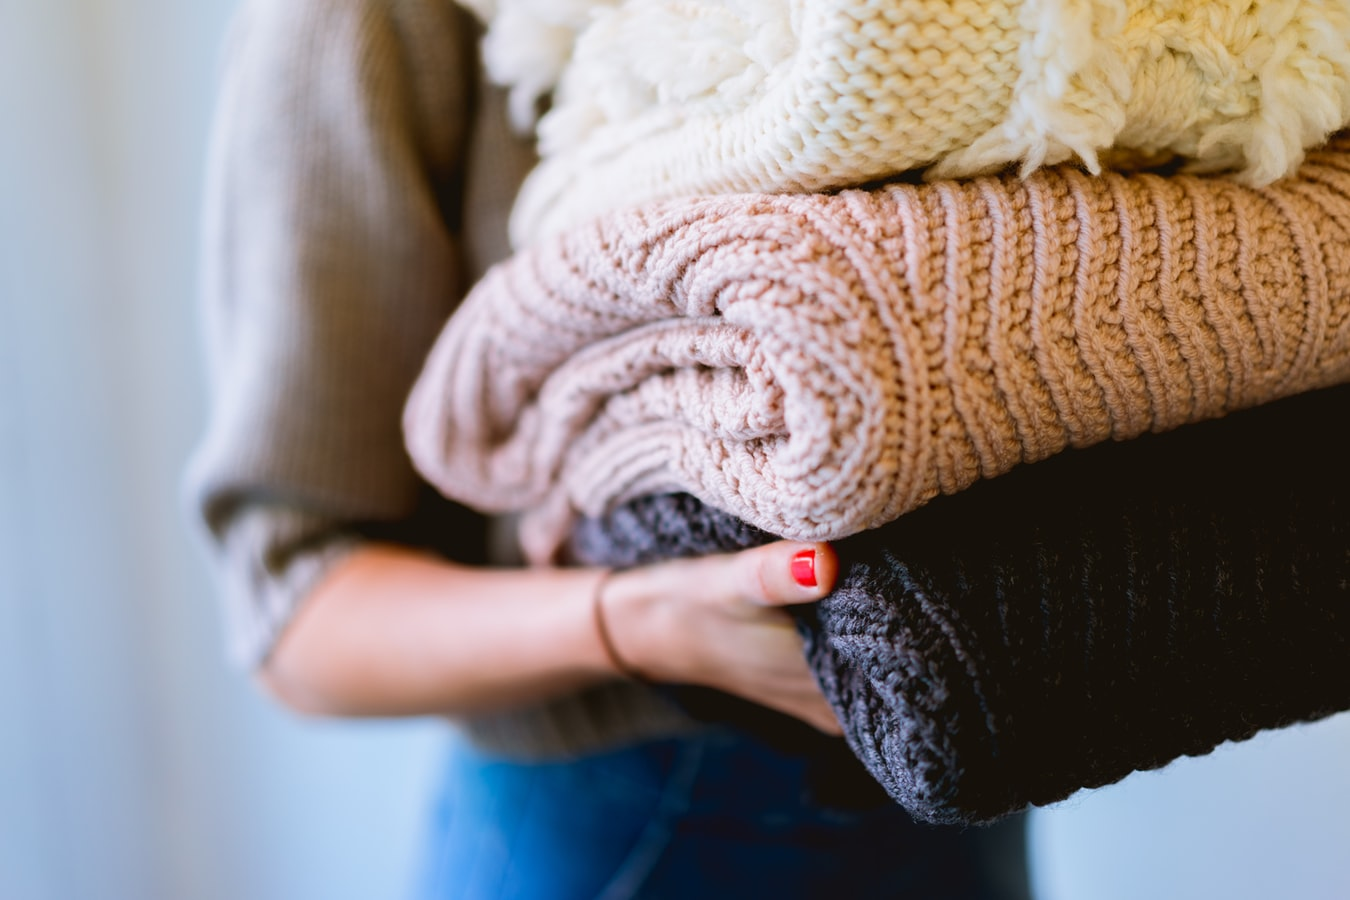 Person holding knitted clothing